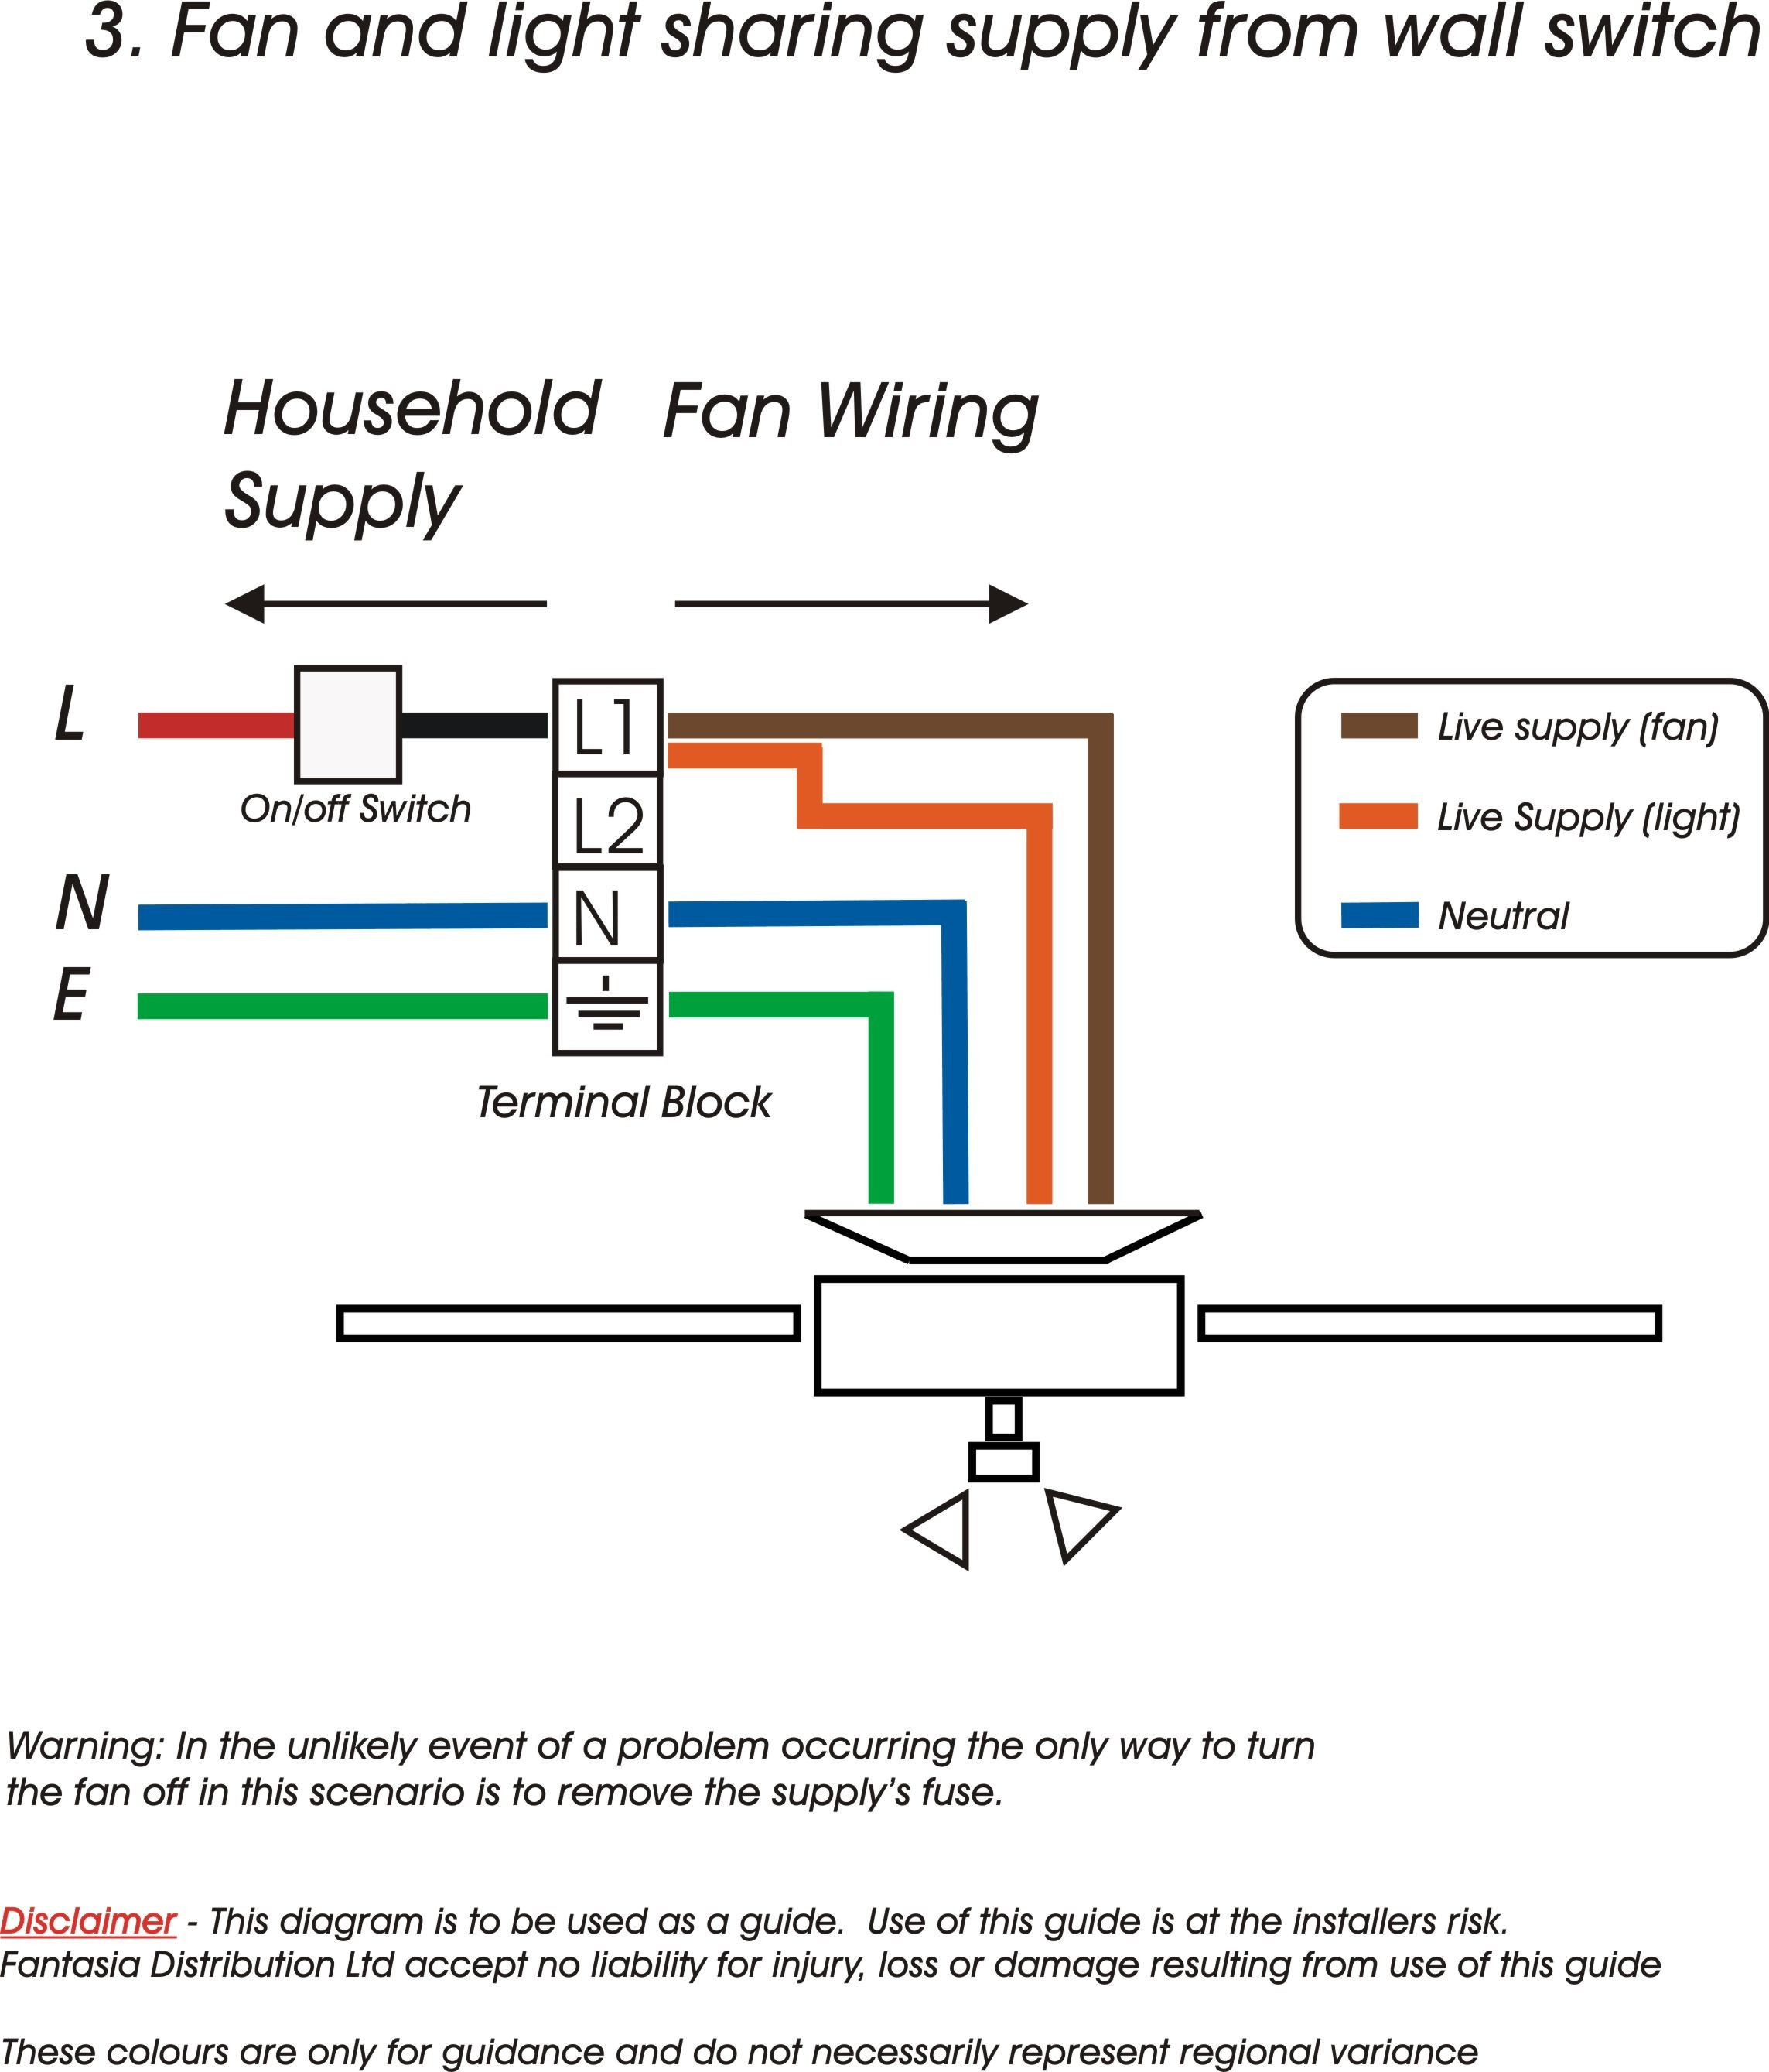 Hampton Bay 3 Speed Ceiling Fan Switch Wiring Diagram Best Of Wiring - Hampton Bay Ceiling Fan Switch Wiring Diagram